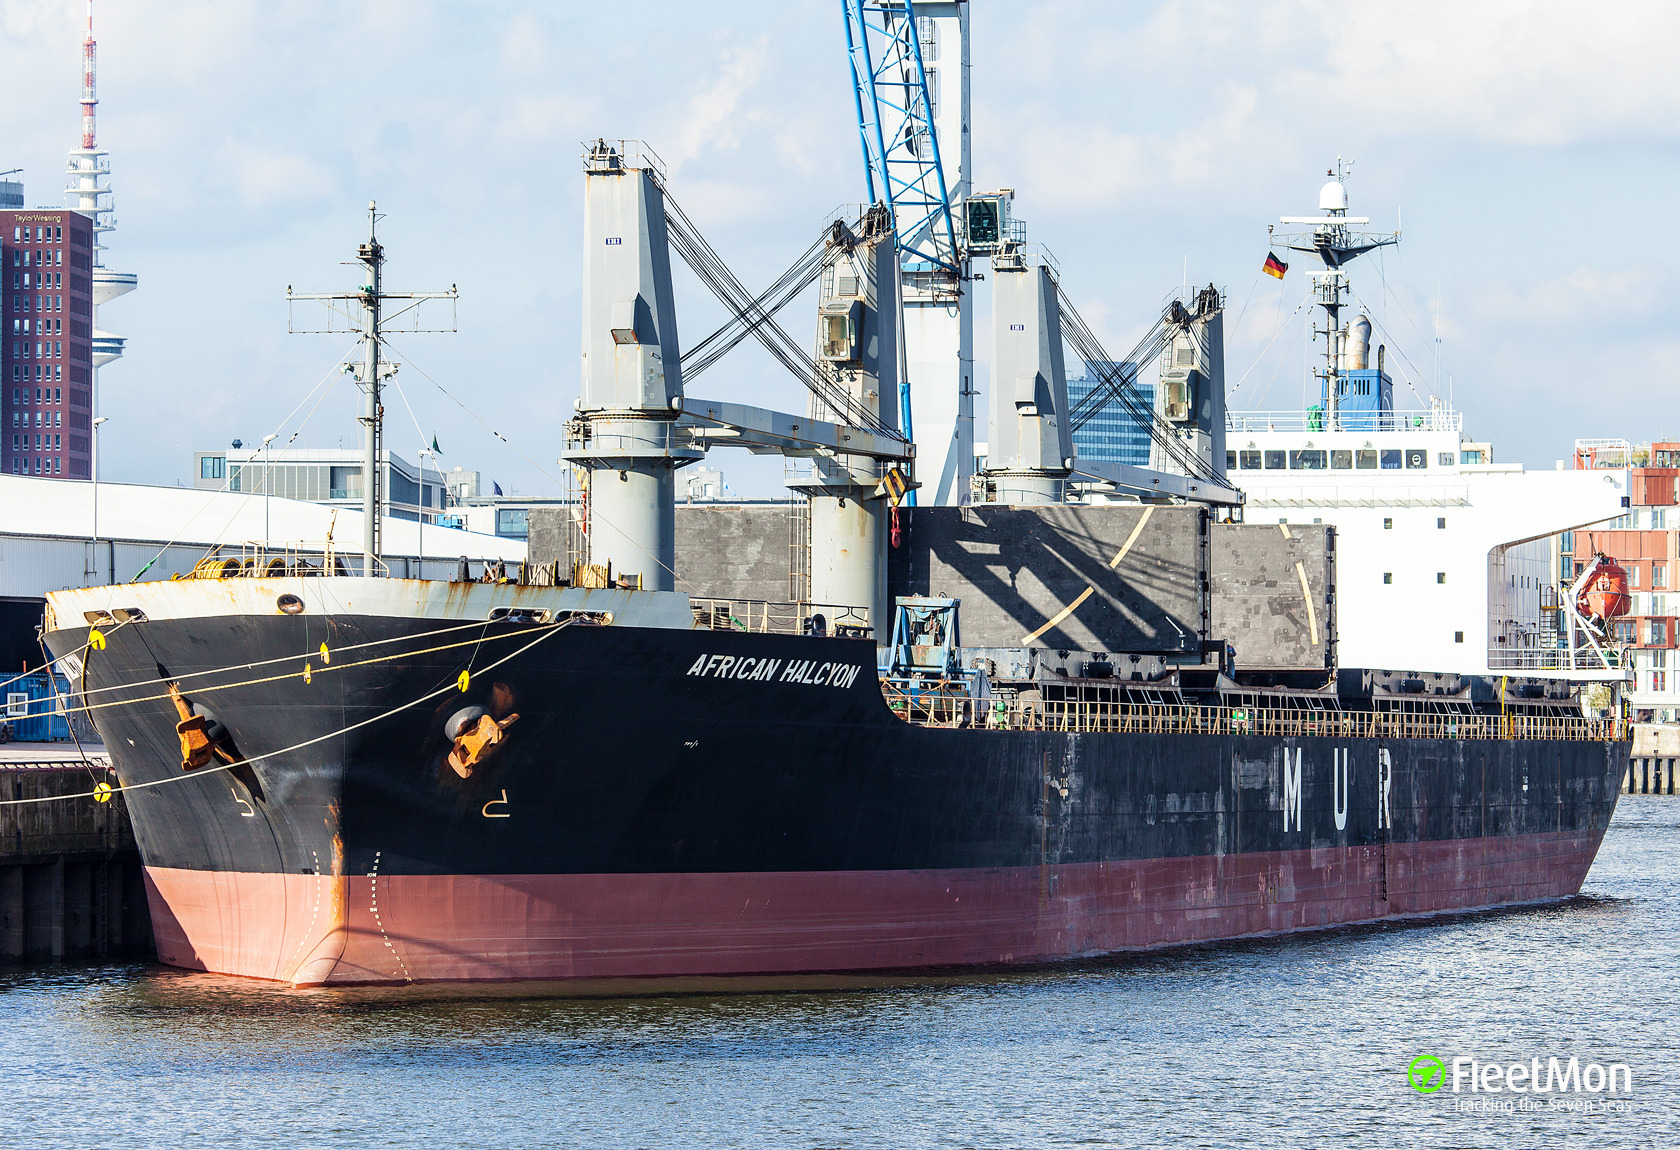 General cargo vessel African Halcyon suspect in pollution